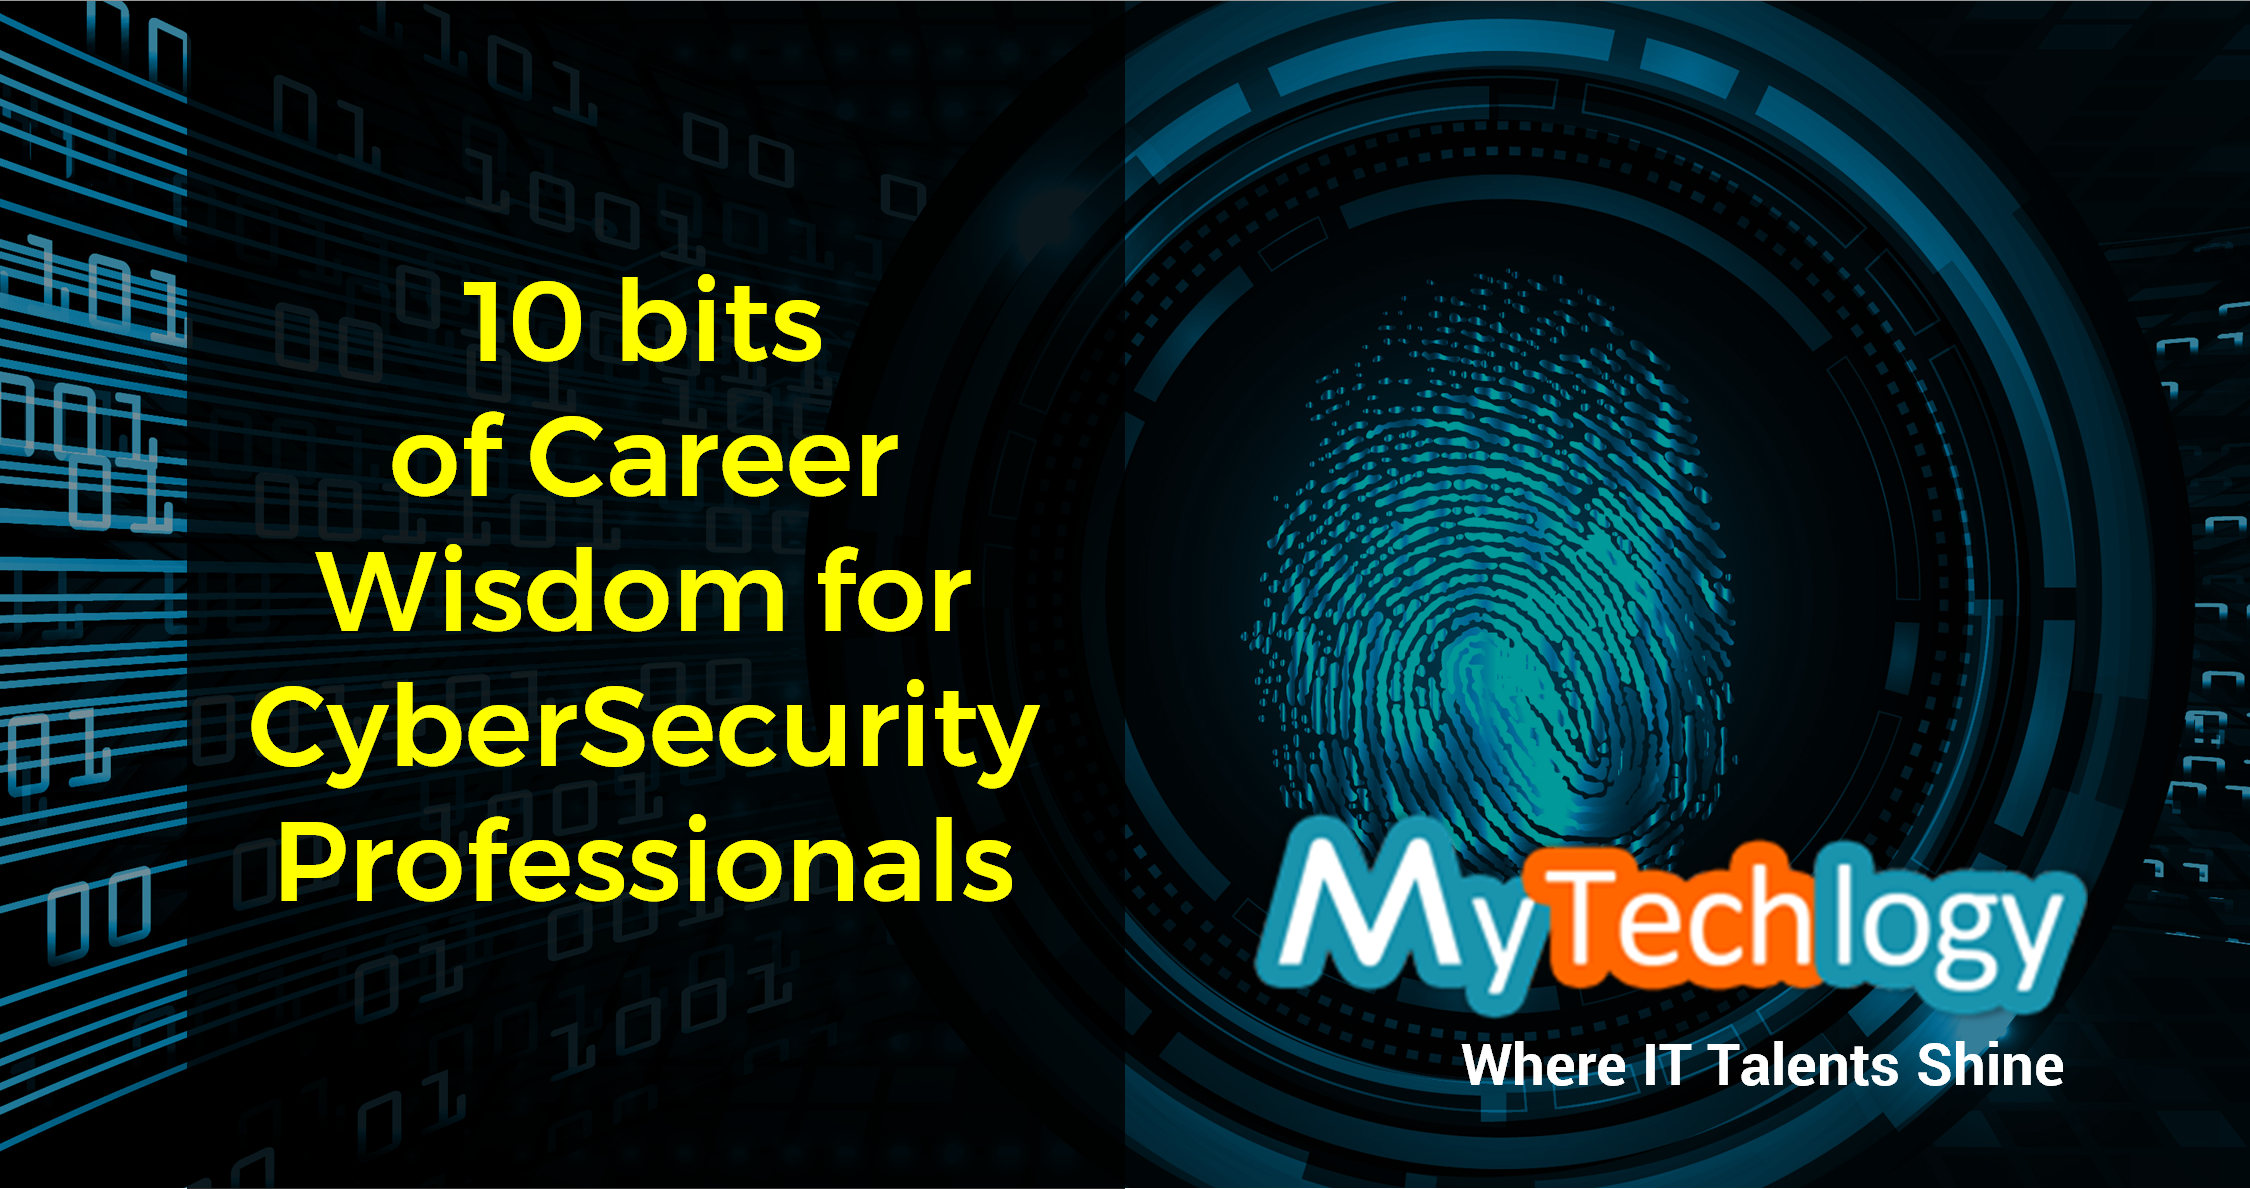 10 bits of wisdom to thrive your career in CyberSecurity - Image 1